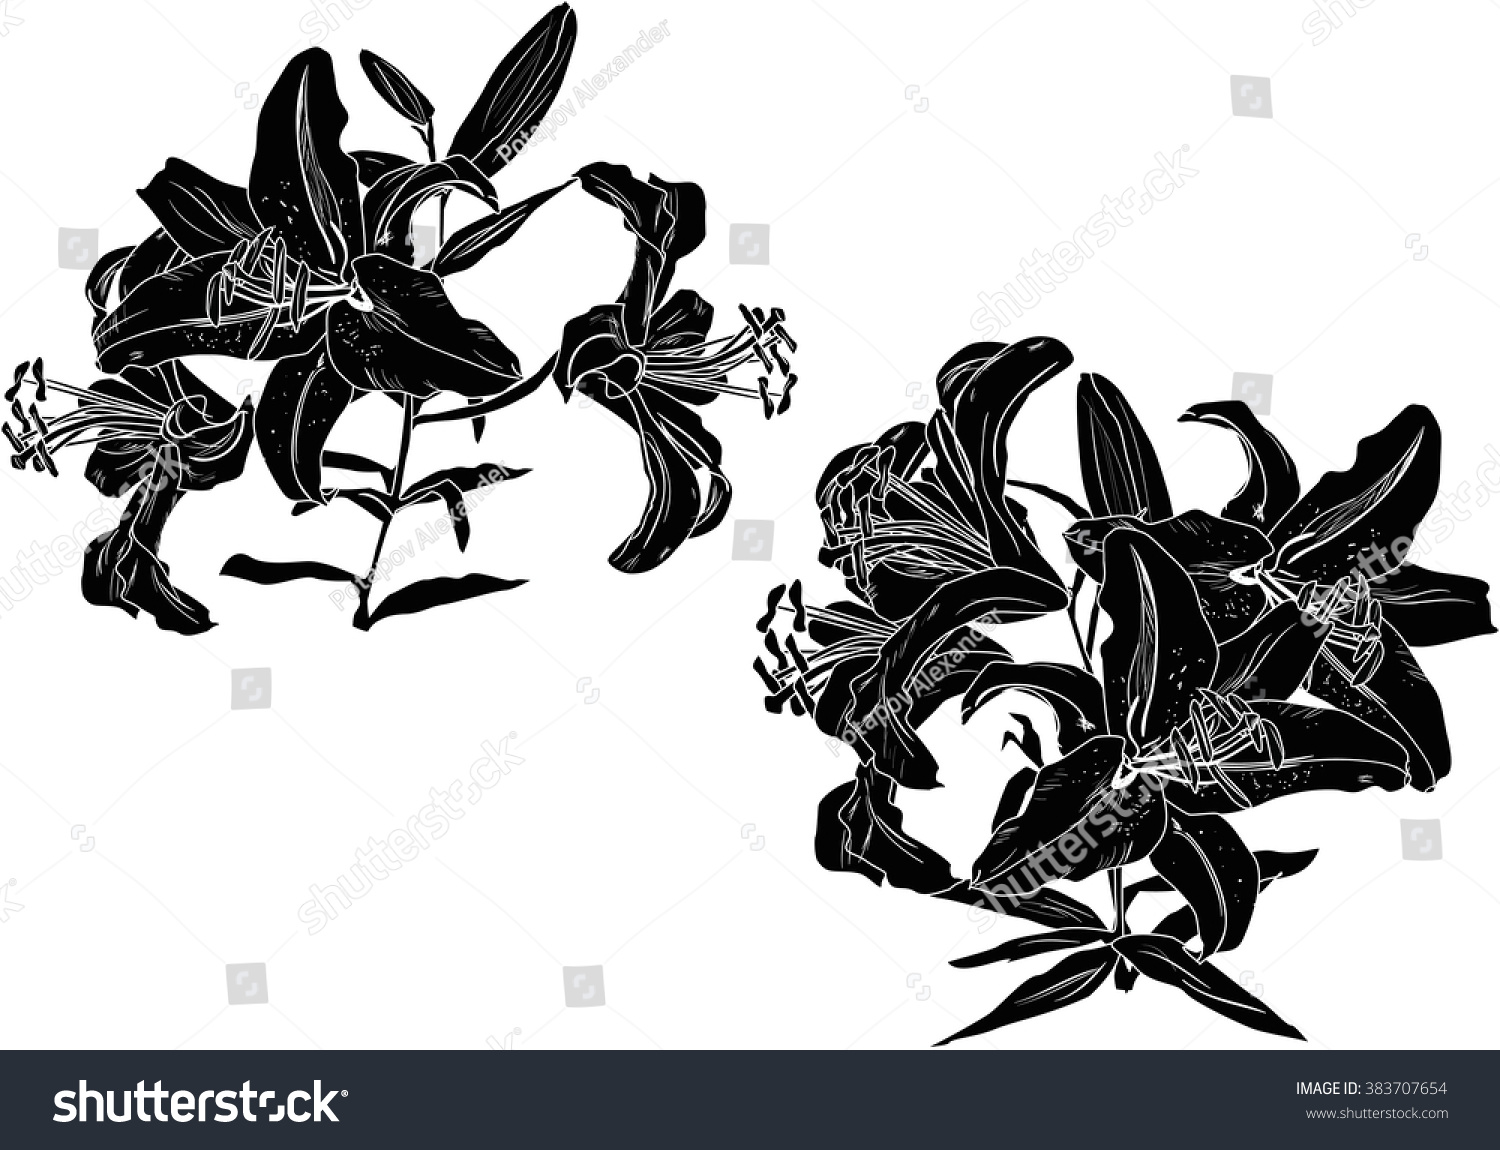 Illustration Black Lily Flowers Silhouettes Isolated Stock Vector